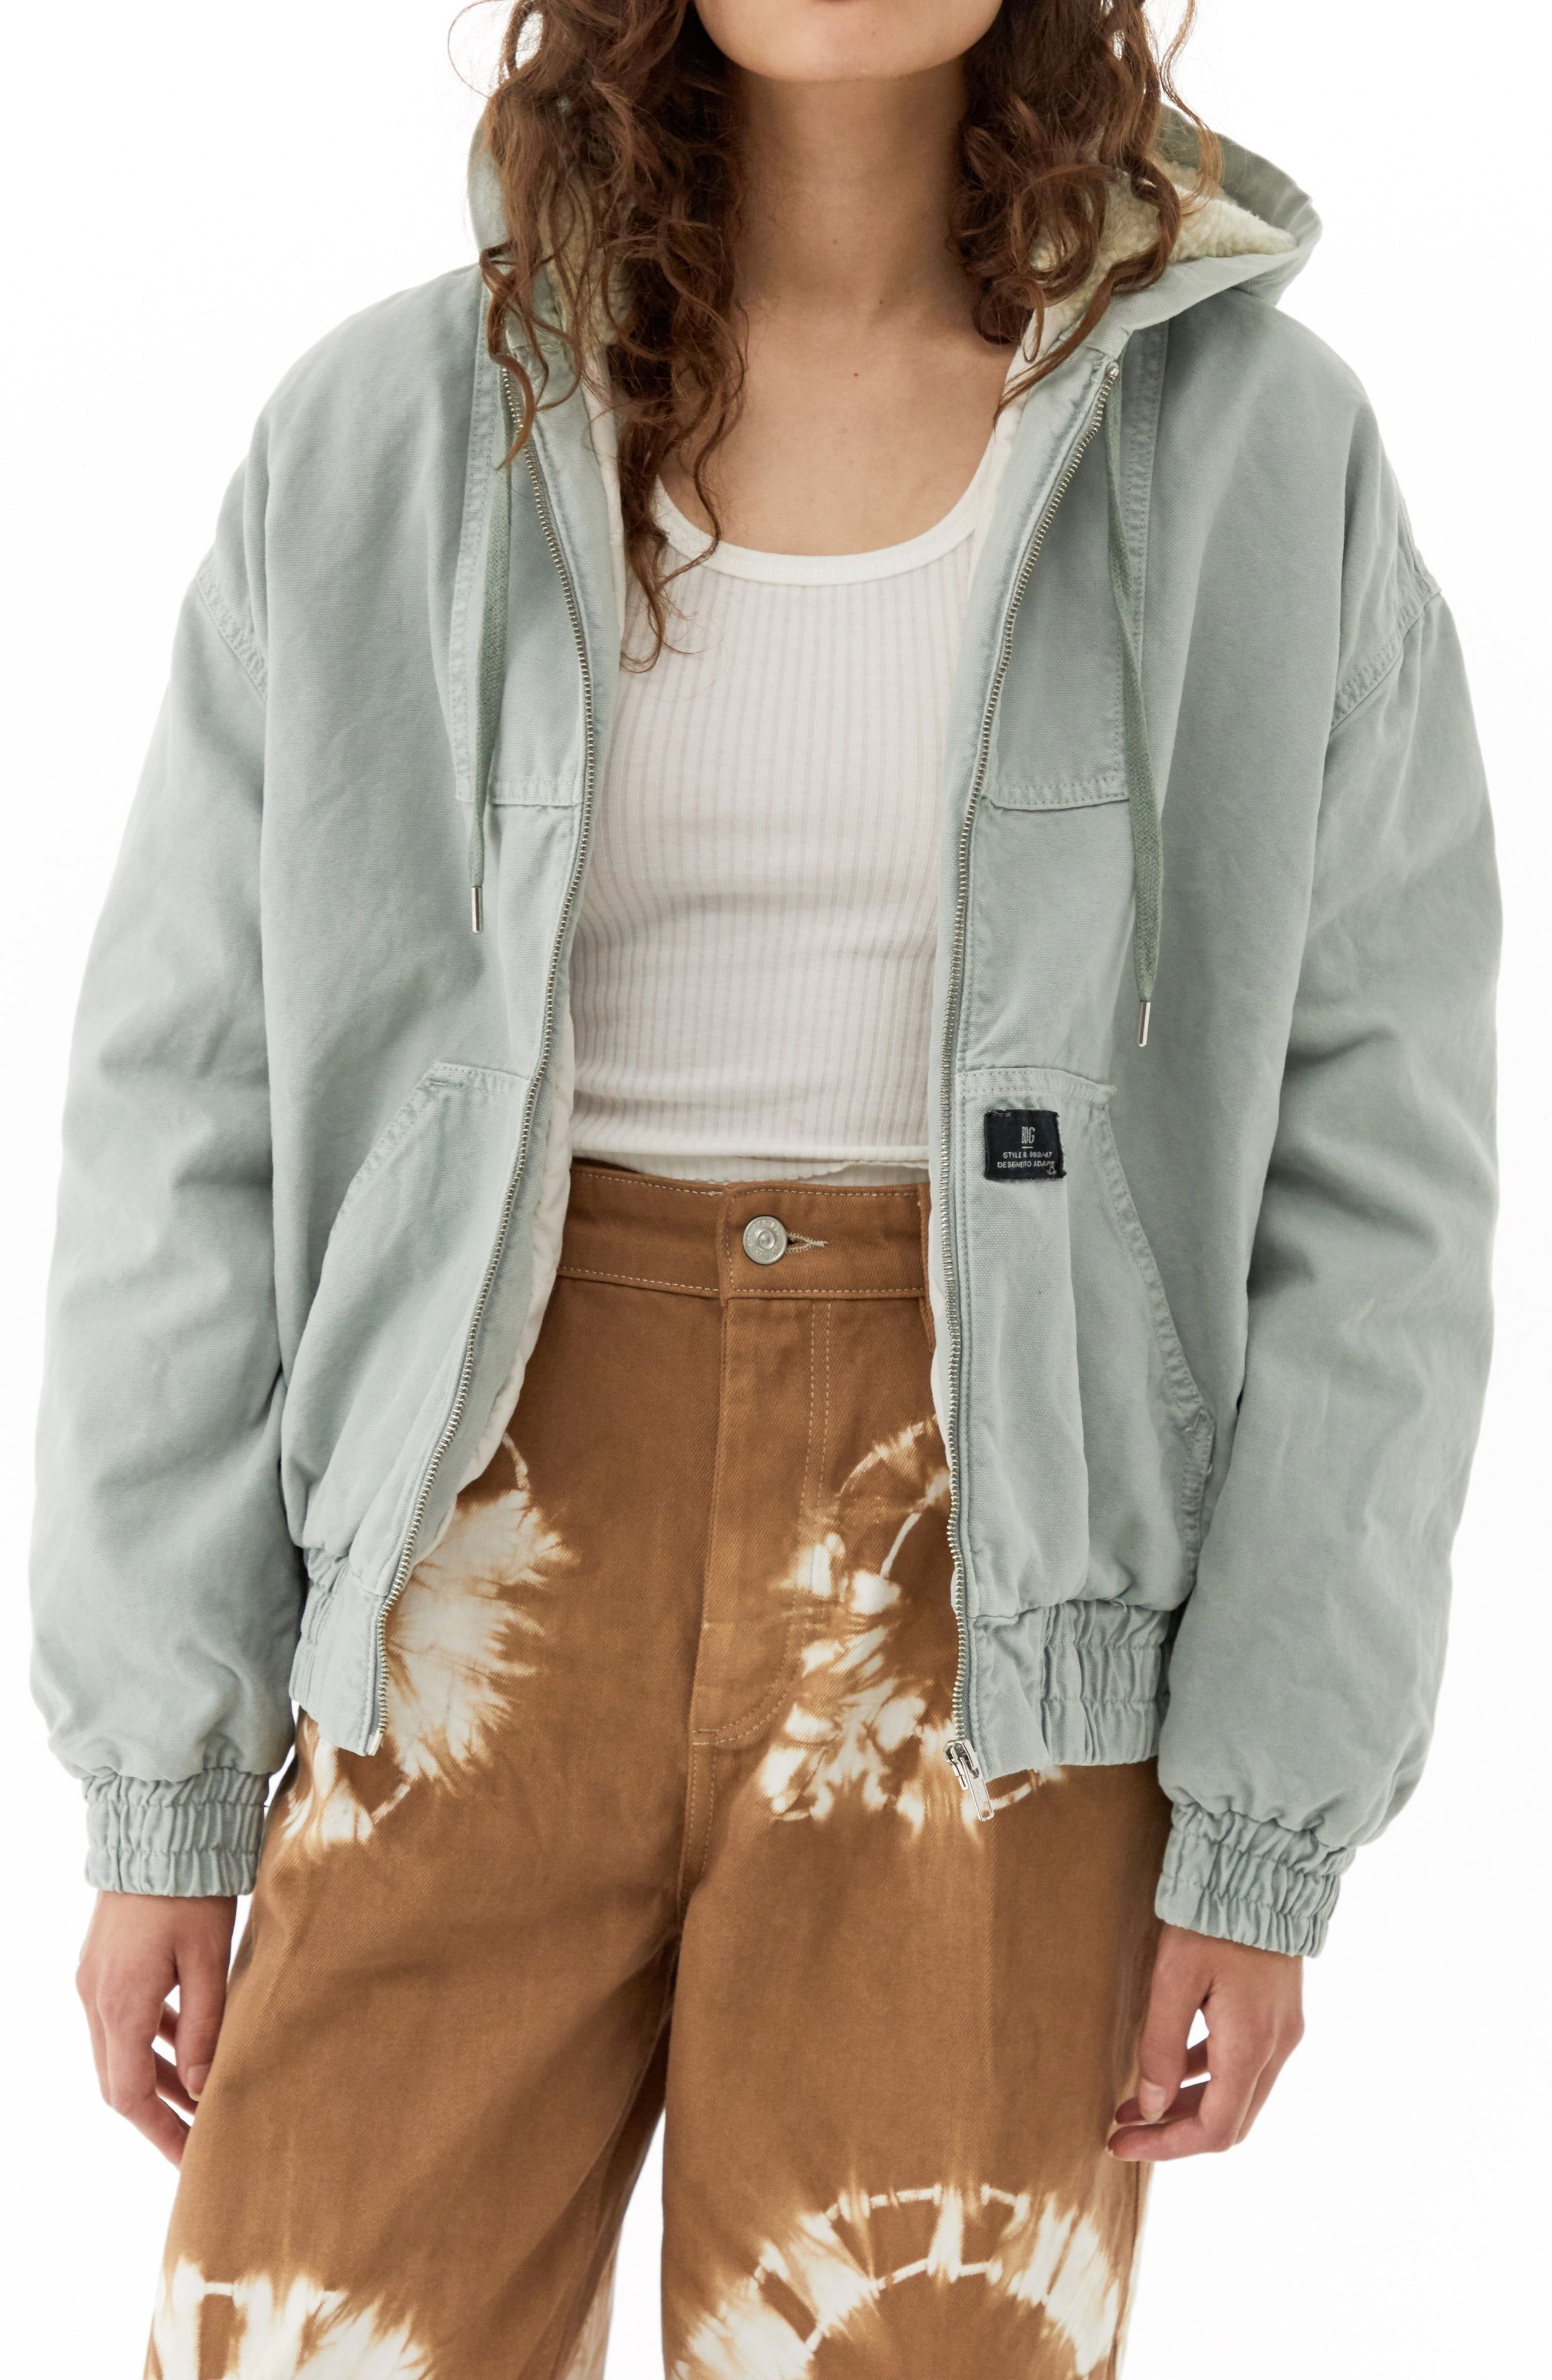 Bdg Urban Outfitters Hooded Canvas Bomber Jacket Nordstrom Urban Outfitters Clothes Bomber Jacket Bomber Jacket Outfit [ 4048 x 2640 Pixel ]